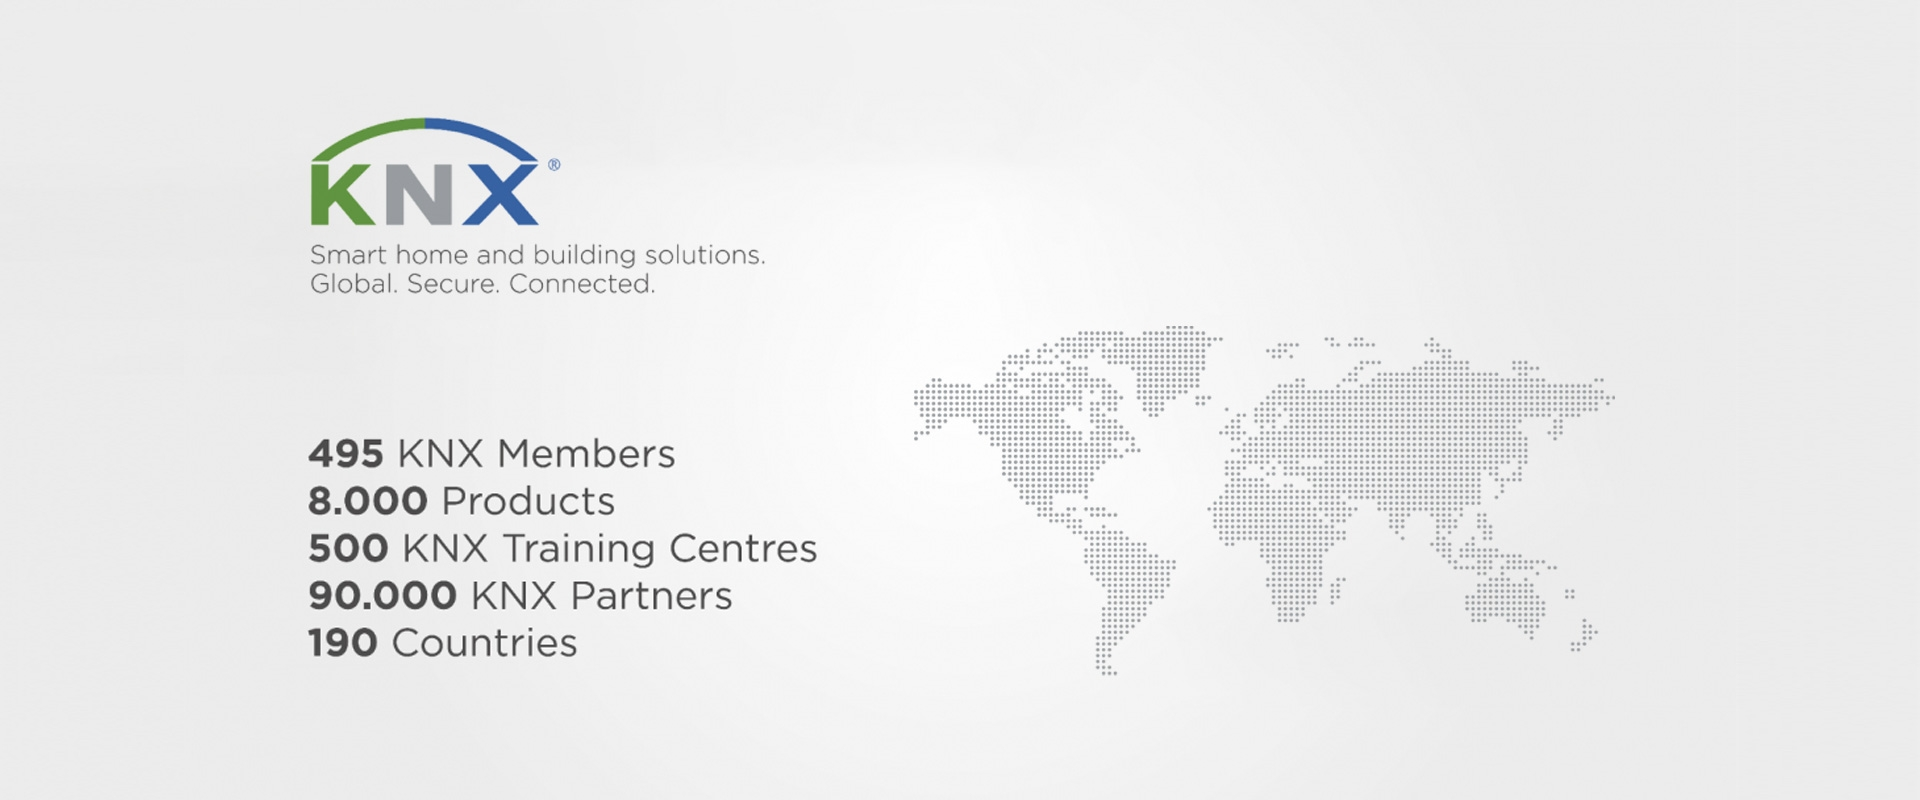 Product certification to KNX standards